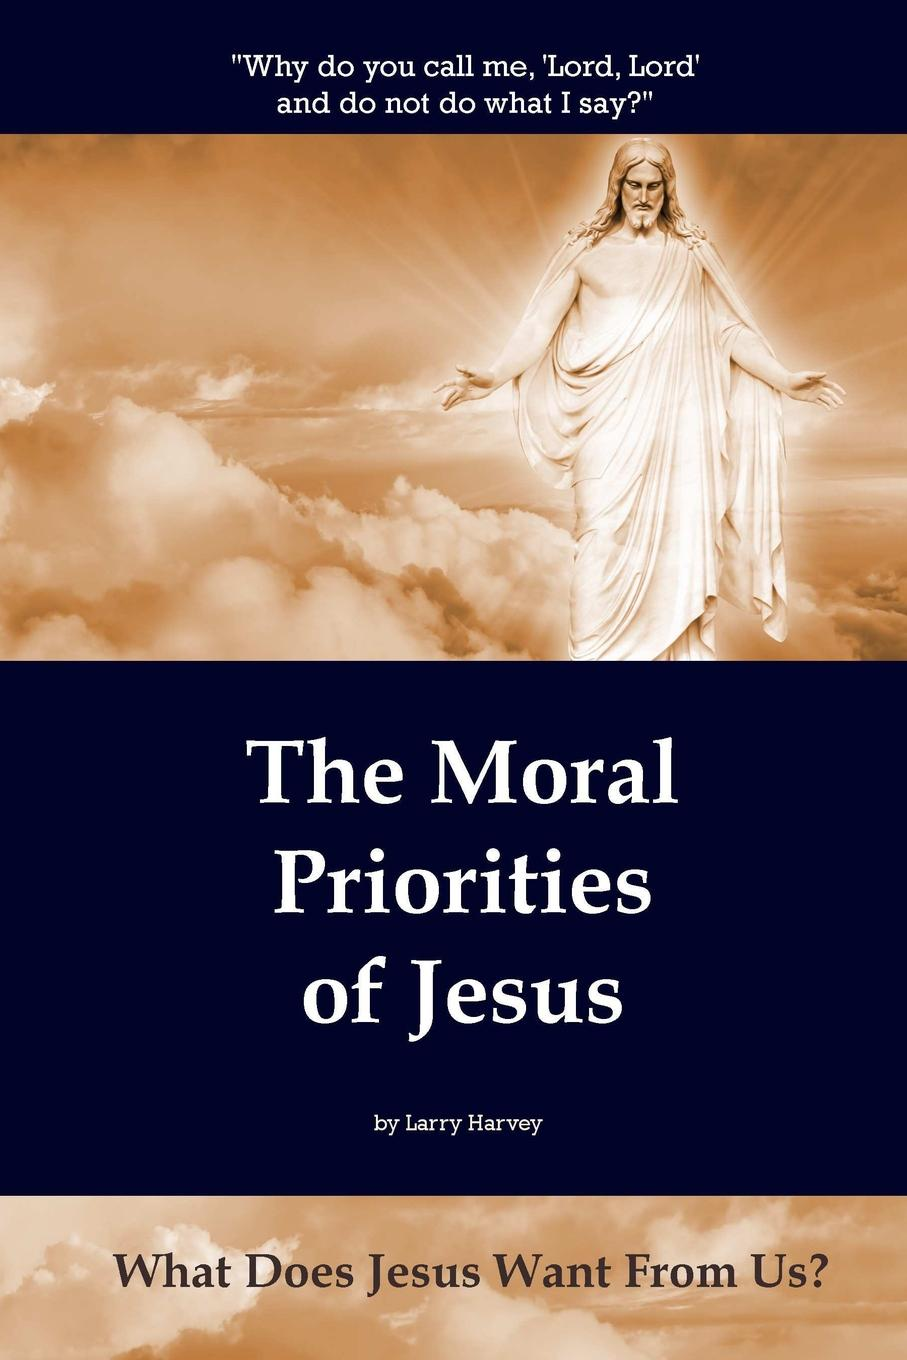 Larry Harvey The Moral Priorities of Jesus. What Does Jesus Want From Us. mural xxl what graffiti аnd street art did next